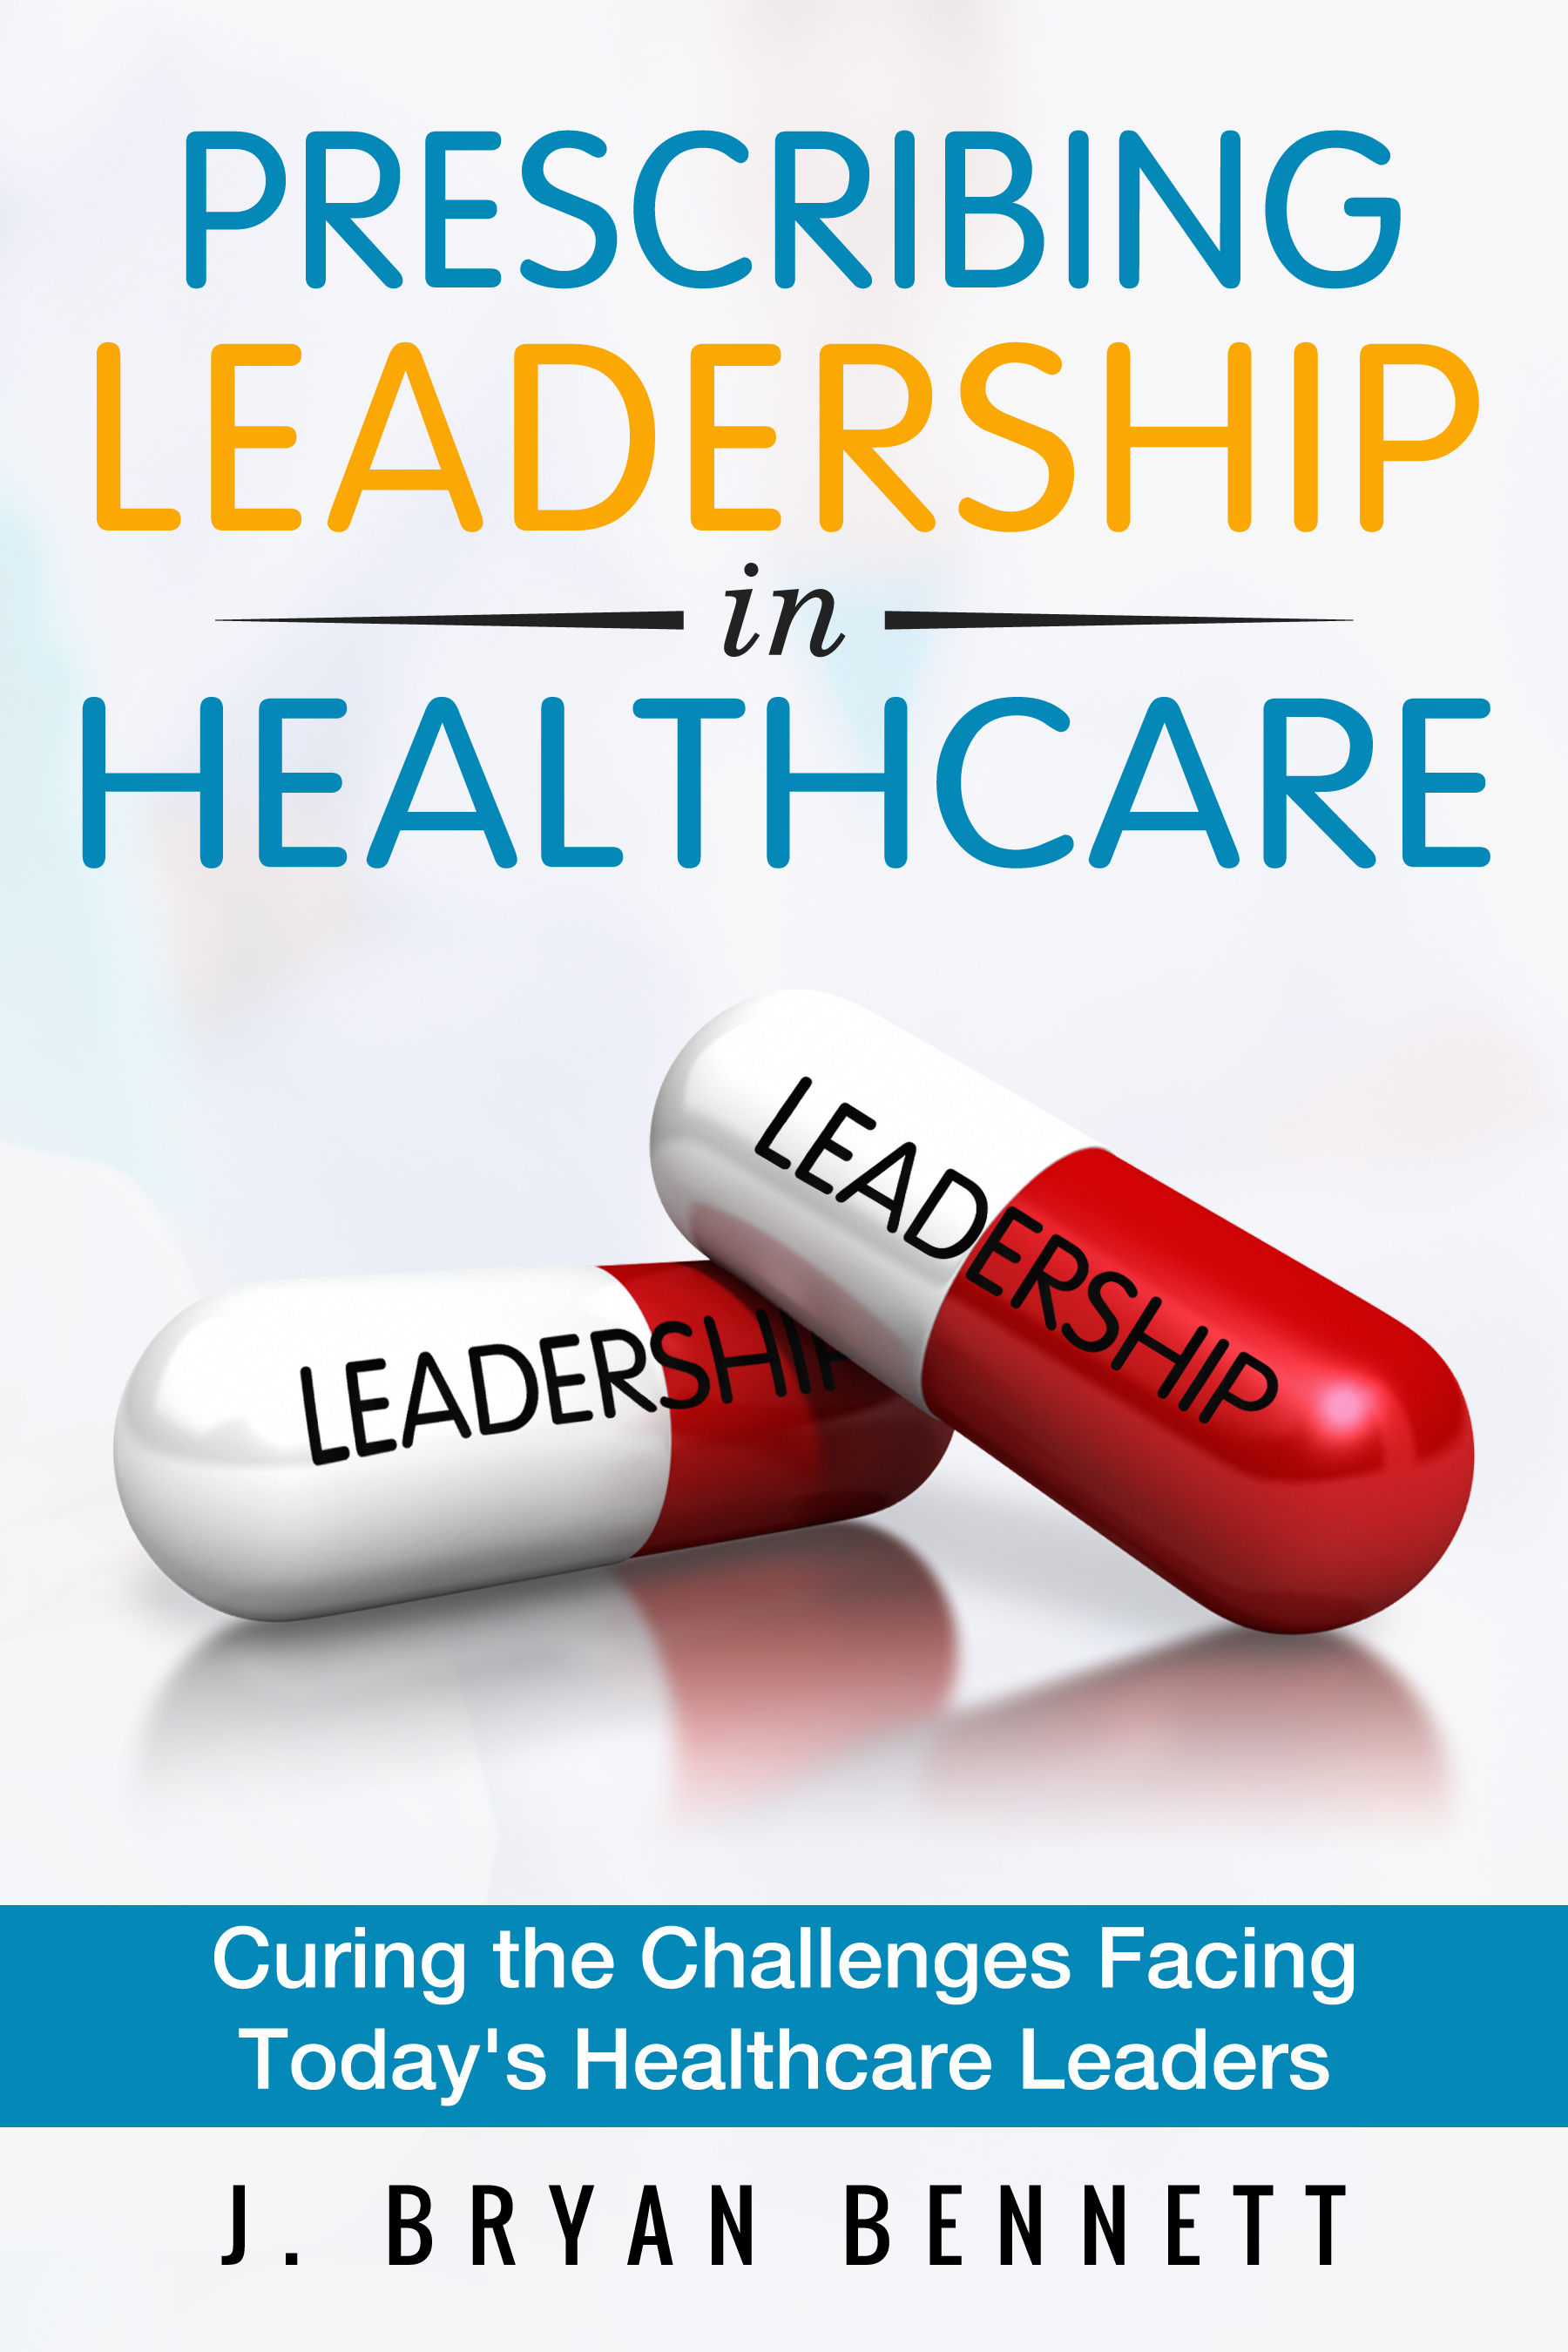 Prescribing Leadership in Healthcare - SIGNED COPY w/Workbook (Until 10/31/17)